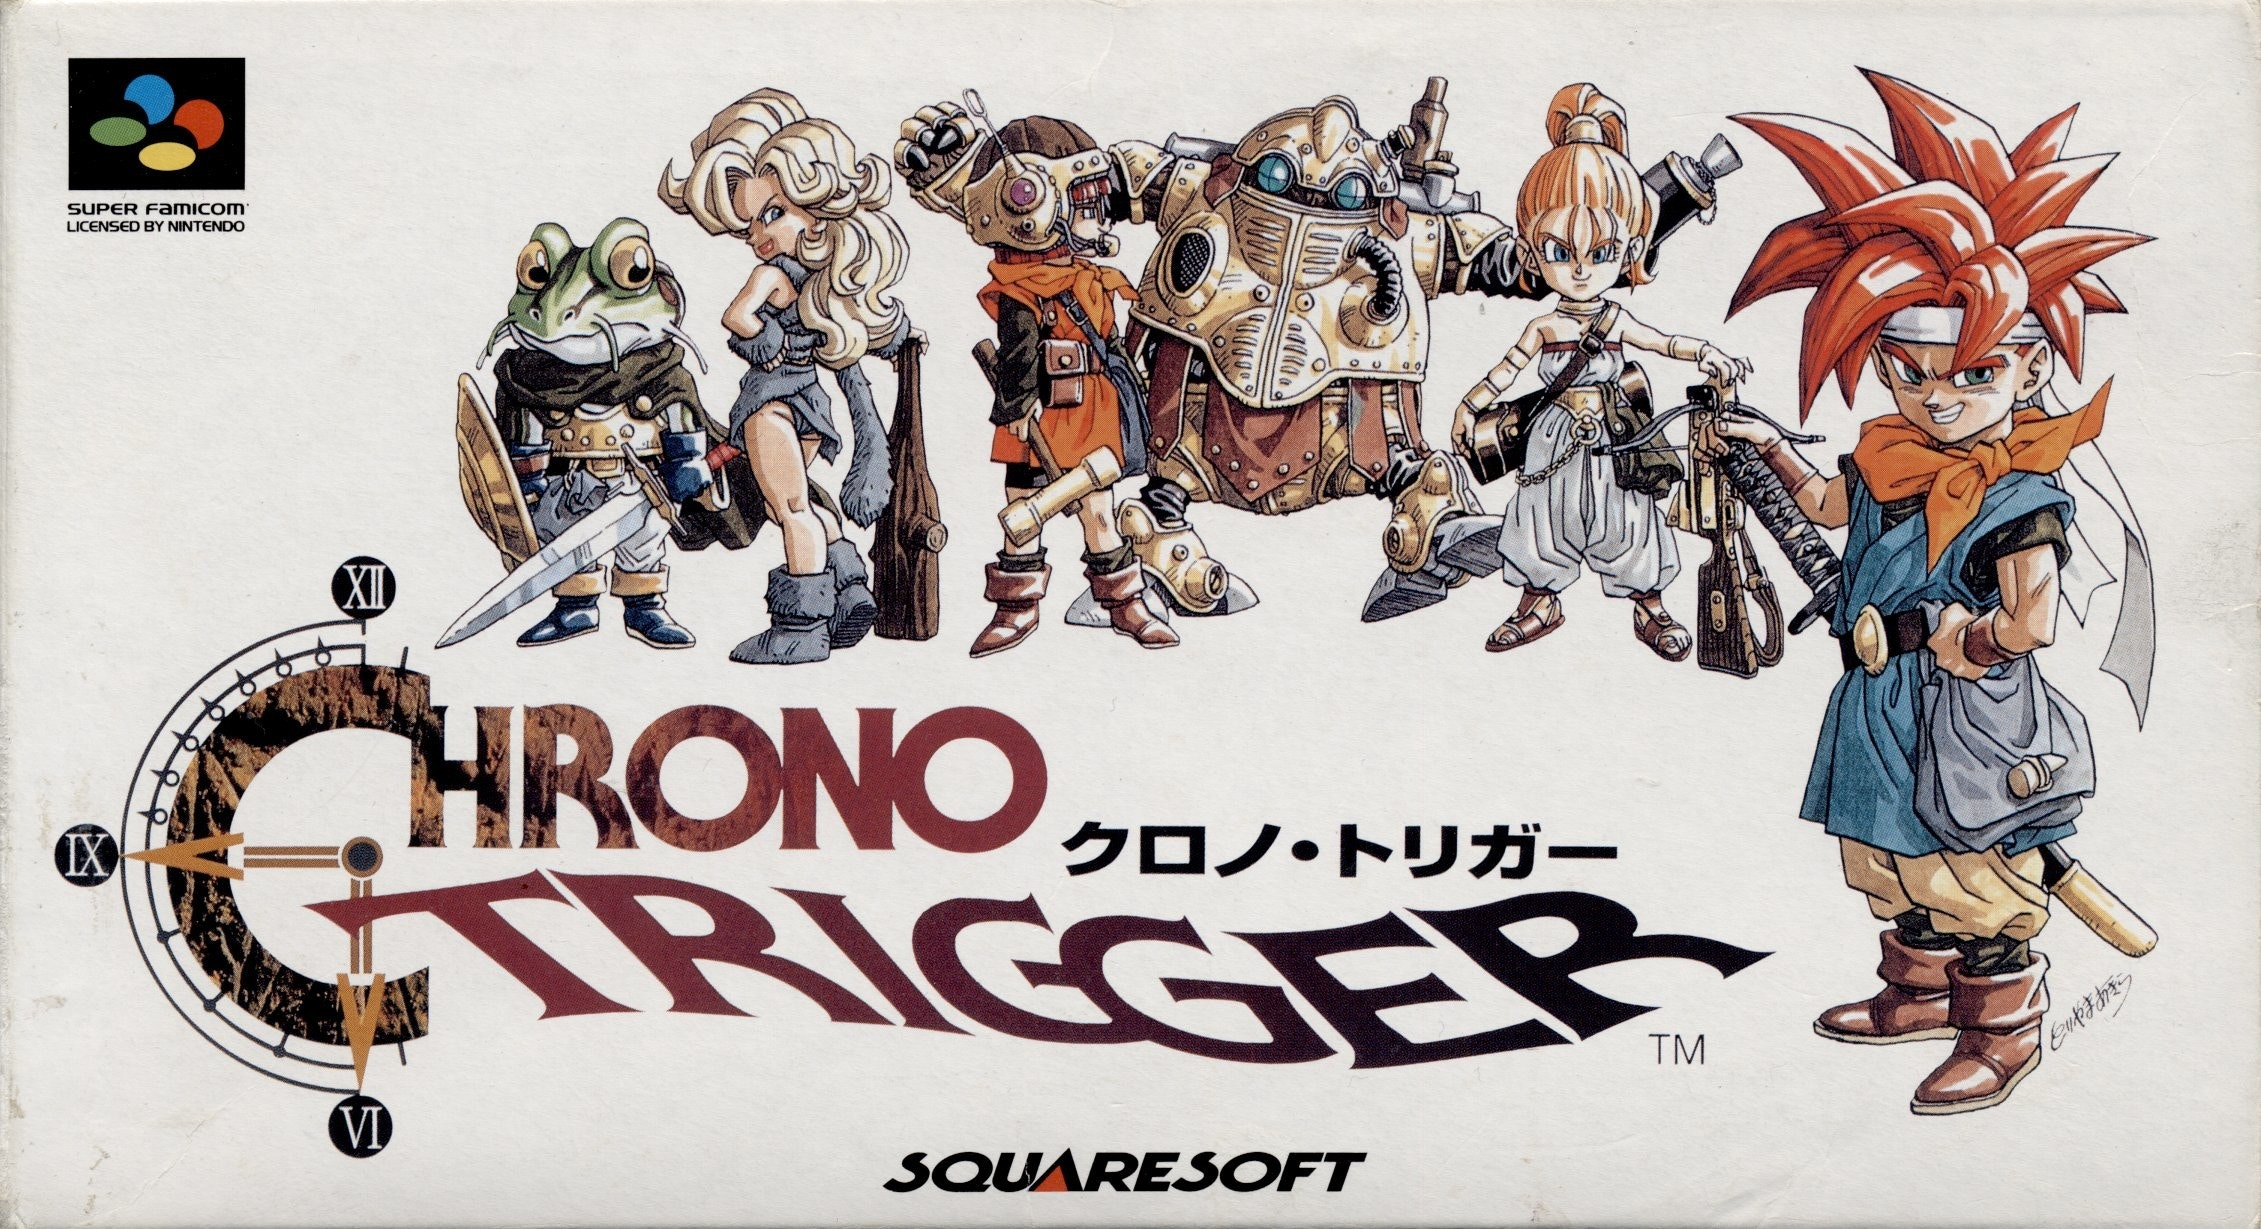 Chrono Trigger, Super Nintendo Entertainment System, Chrono Cross, Video Games, , Game, Role-playing game, Role-playing video game, , Square Enix Co., Ltd., chrono trigger box art, Cartoon, Anime, Poster, Font, Animated cartoon, Illustration, Fictional character, Animation, Graphics, Games